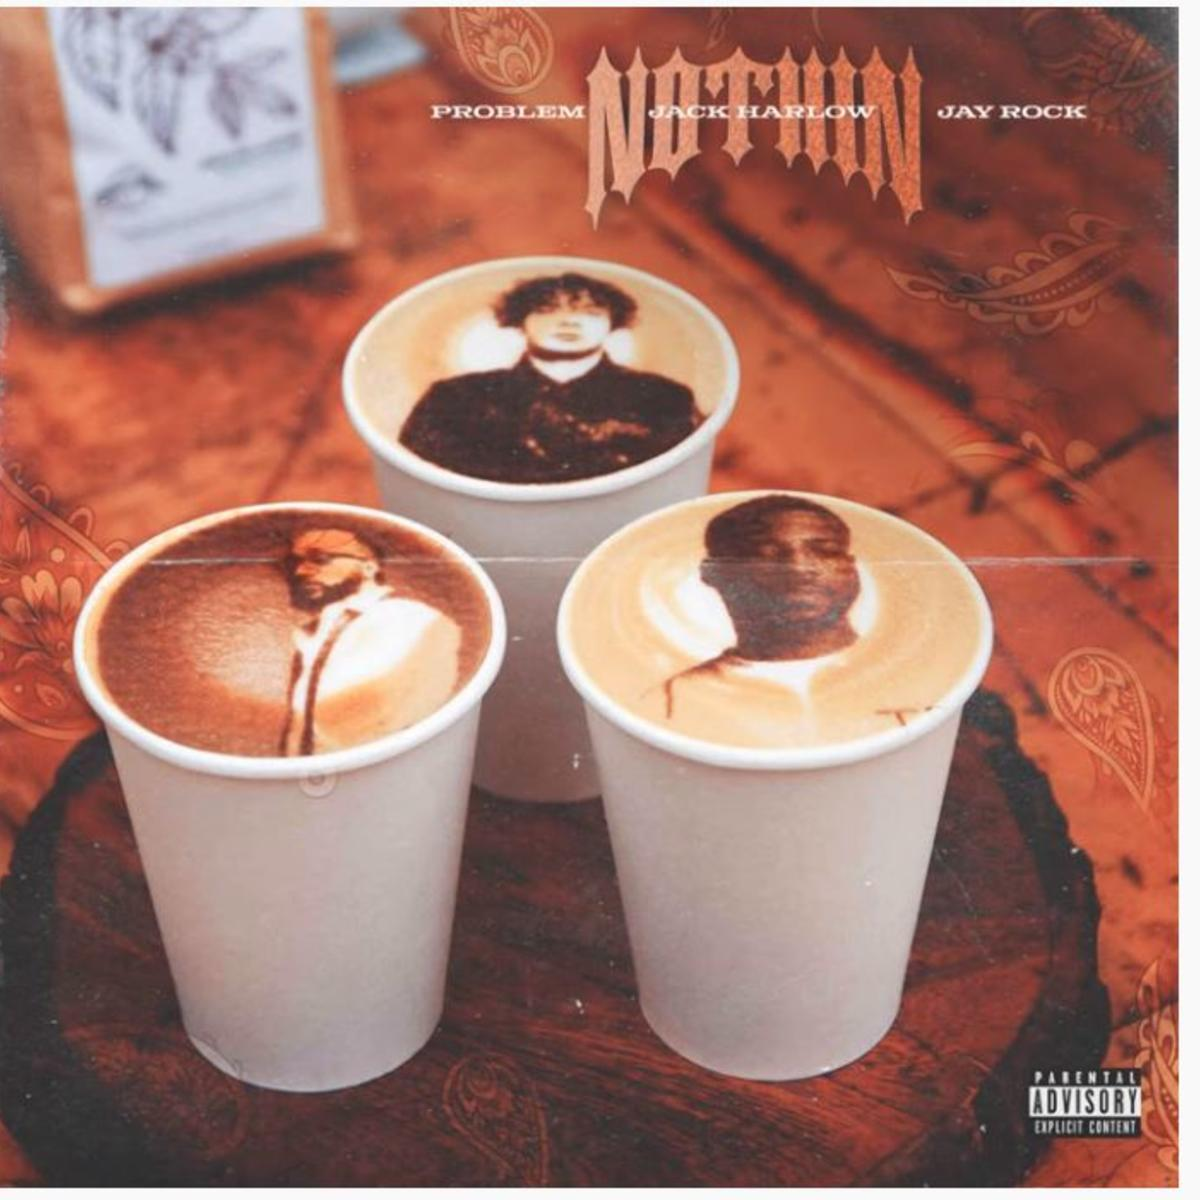 New Problem Single 'Nothin' Feat. Jay Rock and Jack Harlow Out Now